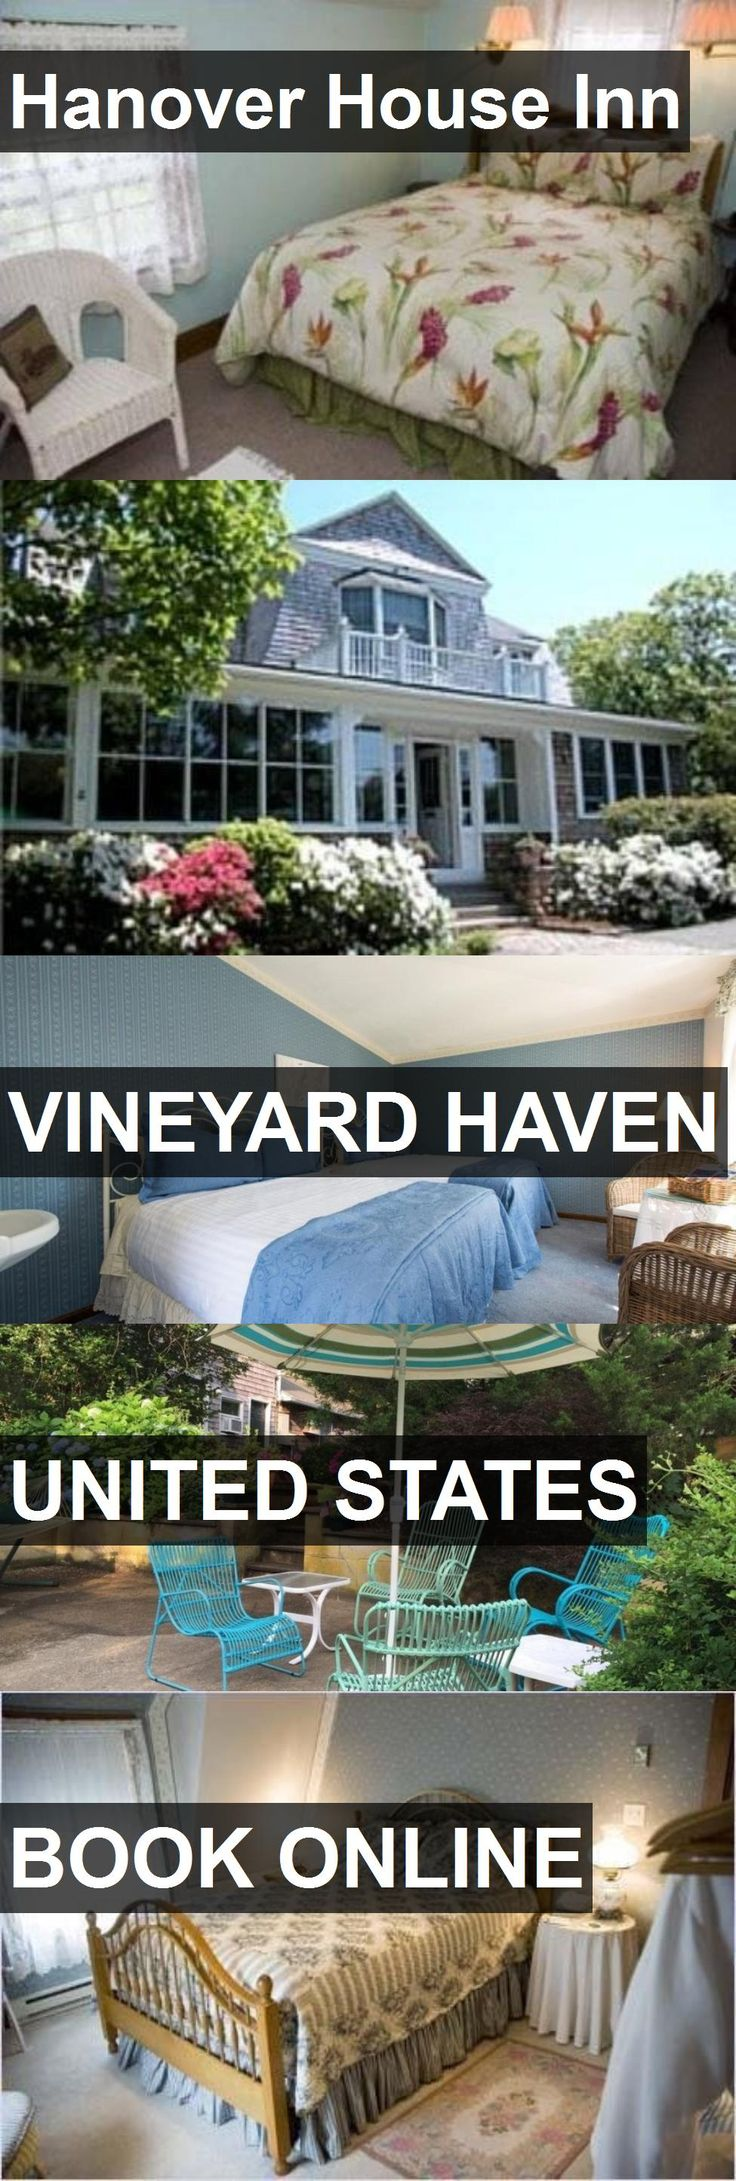 Hotel Hanover House Inn in Vineyard Haven, United States. For more information, photos, reviews and best prices please follow the link. #UnitedStates #VineyardHaven #travel #vacation #hotel